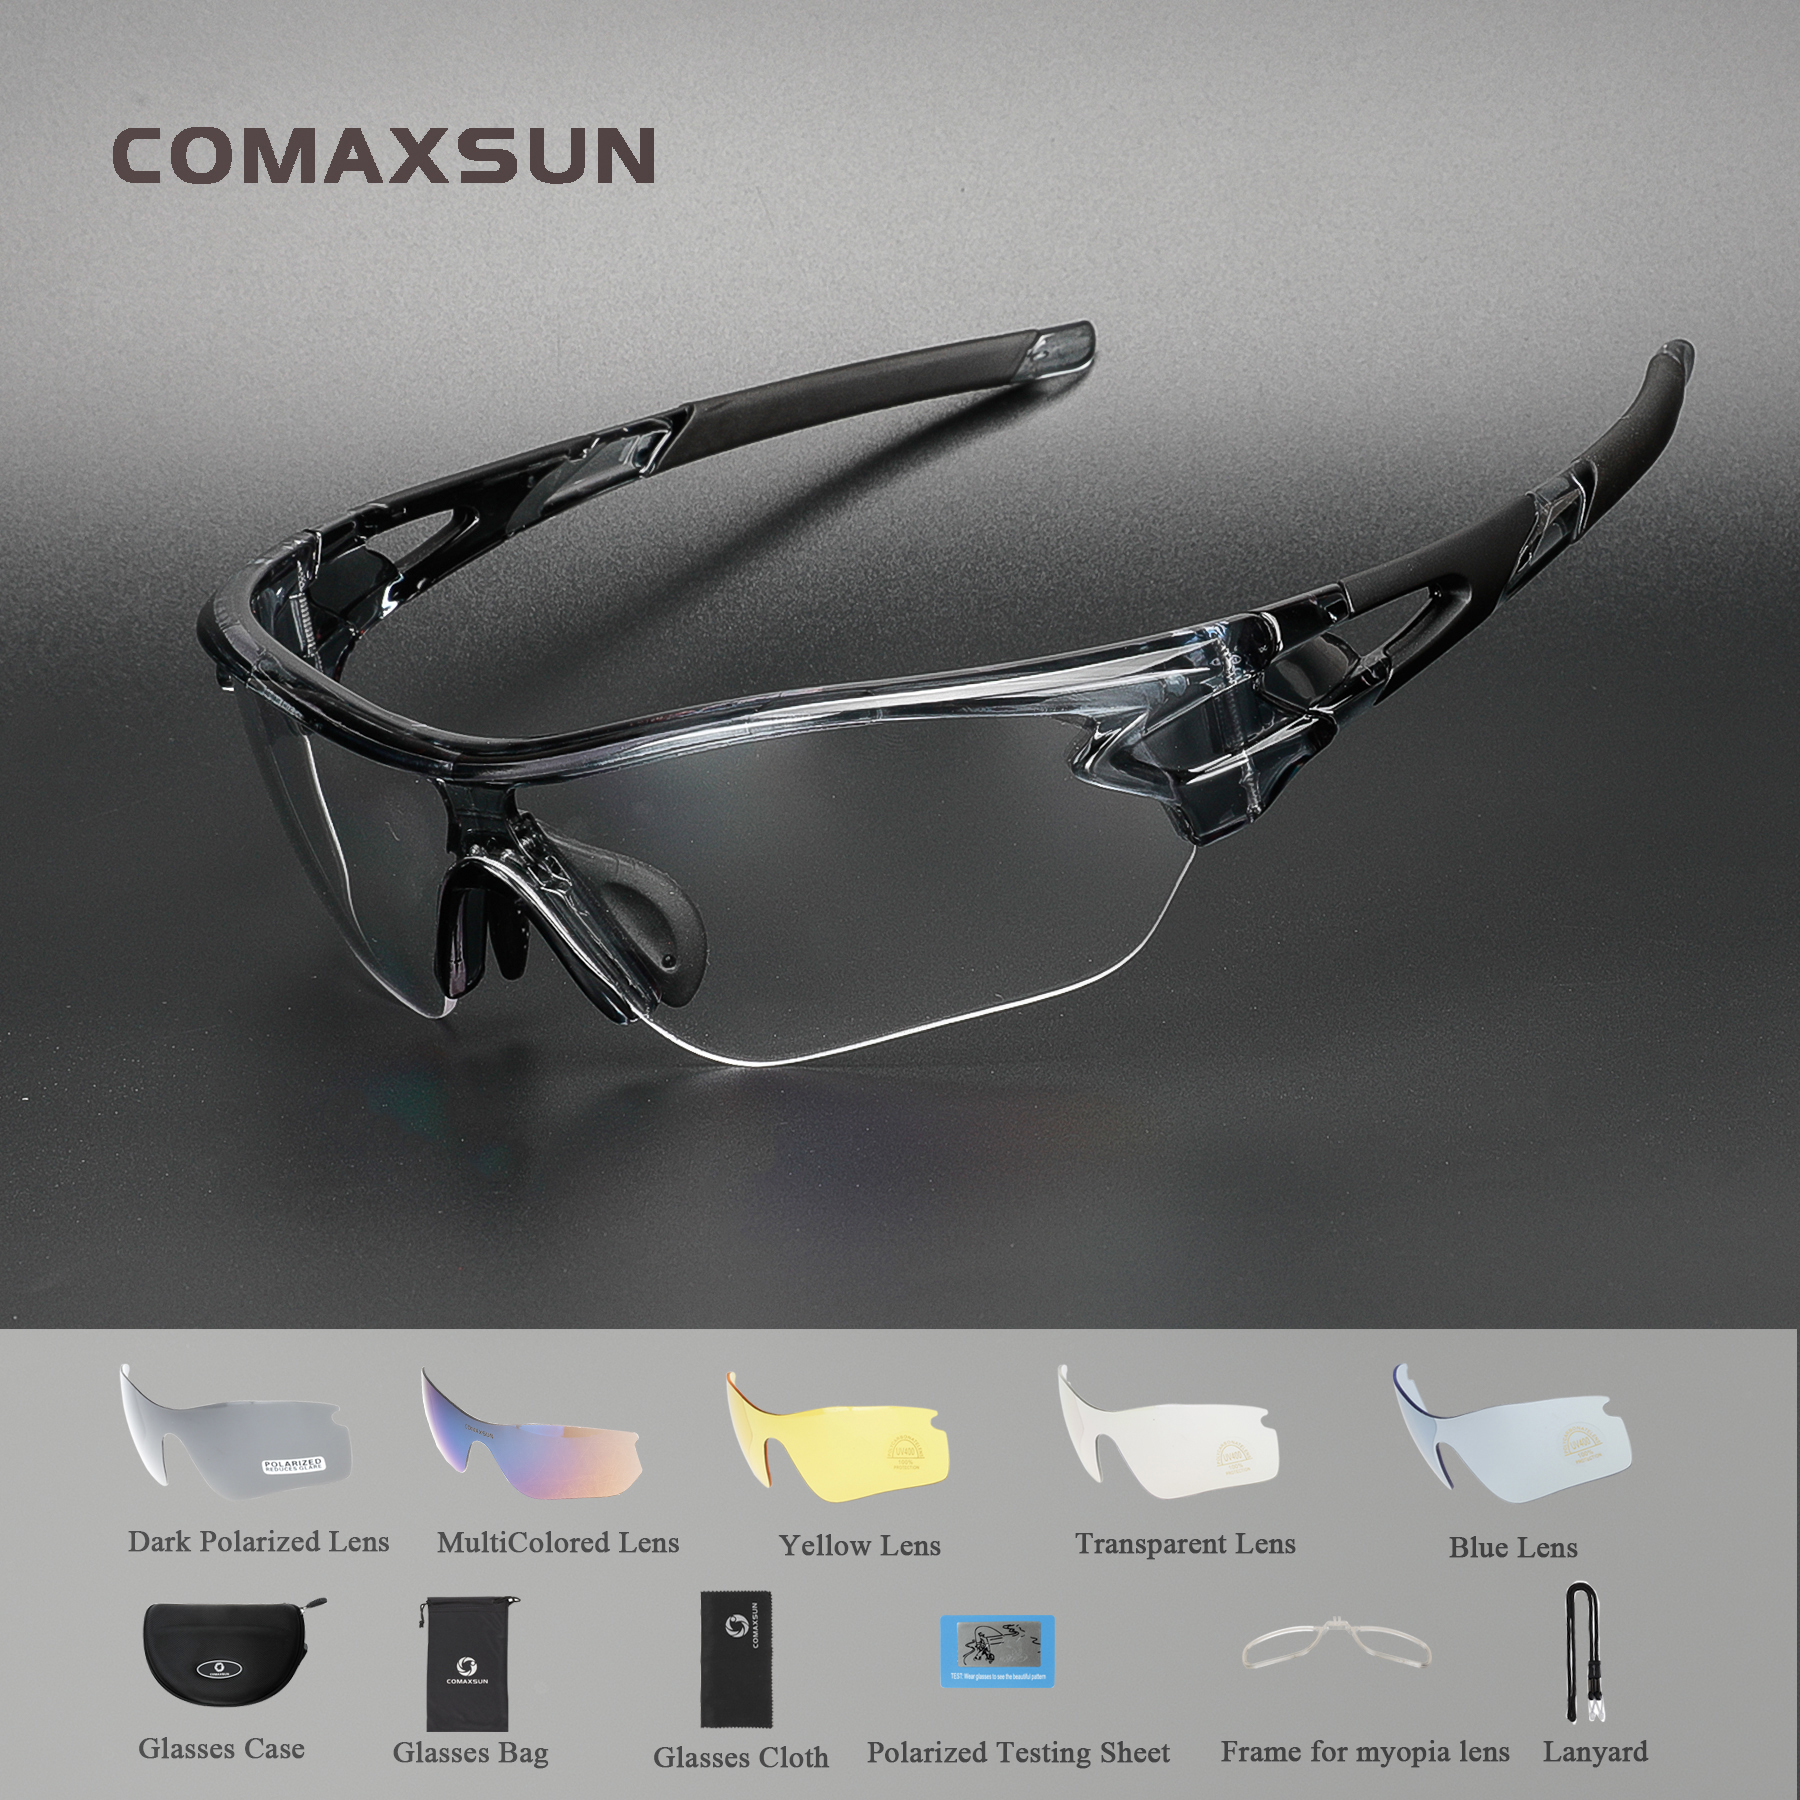 Comaxsun Polarized Sports Men Sunglasses Road Cycling Glasses Mountain Bike Bicycle Riding Protection Goggles Eyewear 5 Len 816